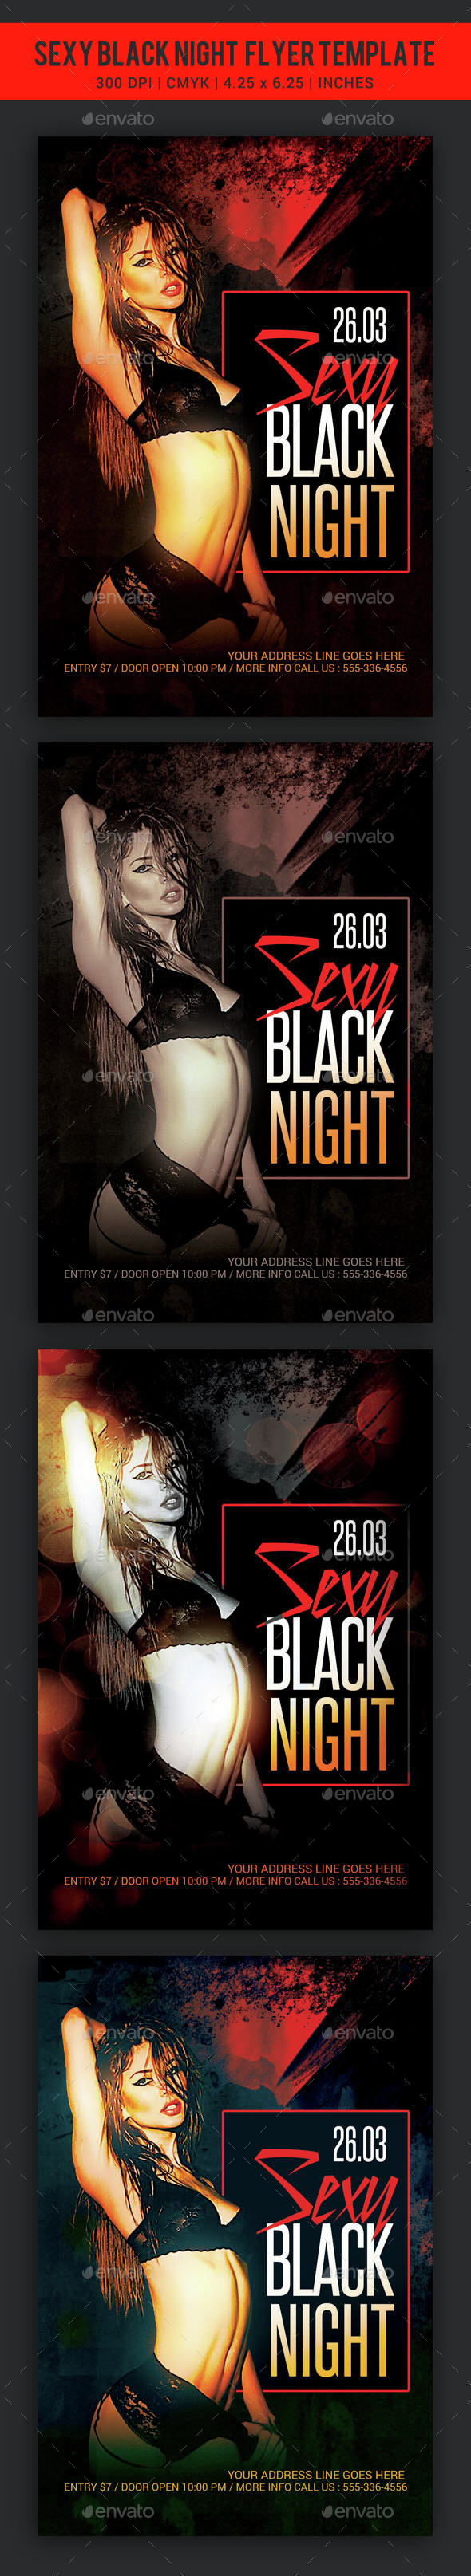 Sexy Black Night Party Flyer template